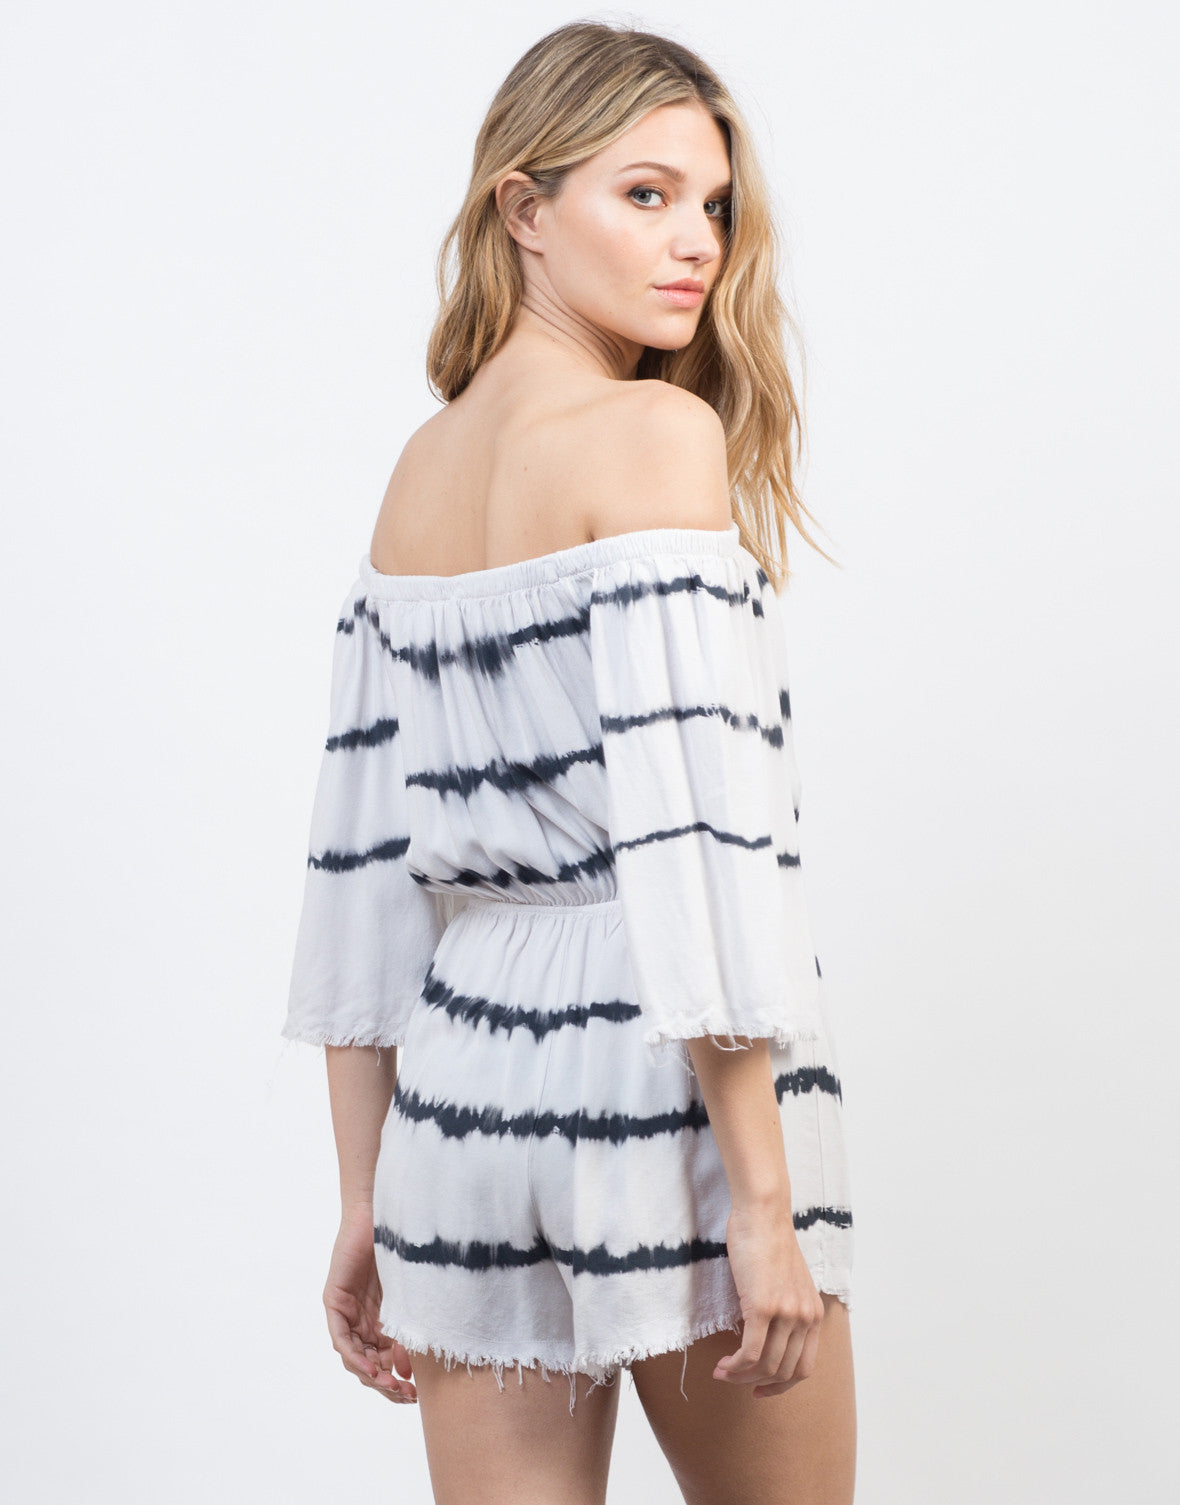 Back View of Off-the-Shoulder Tie-Dye Romper